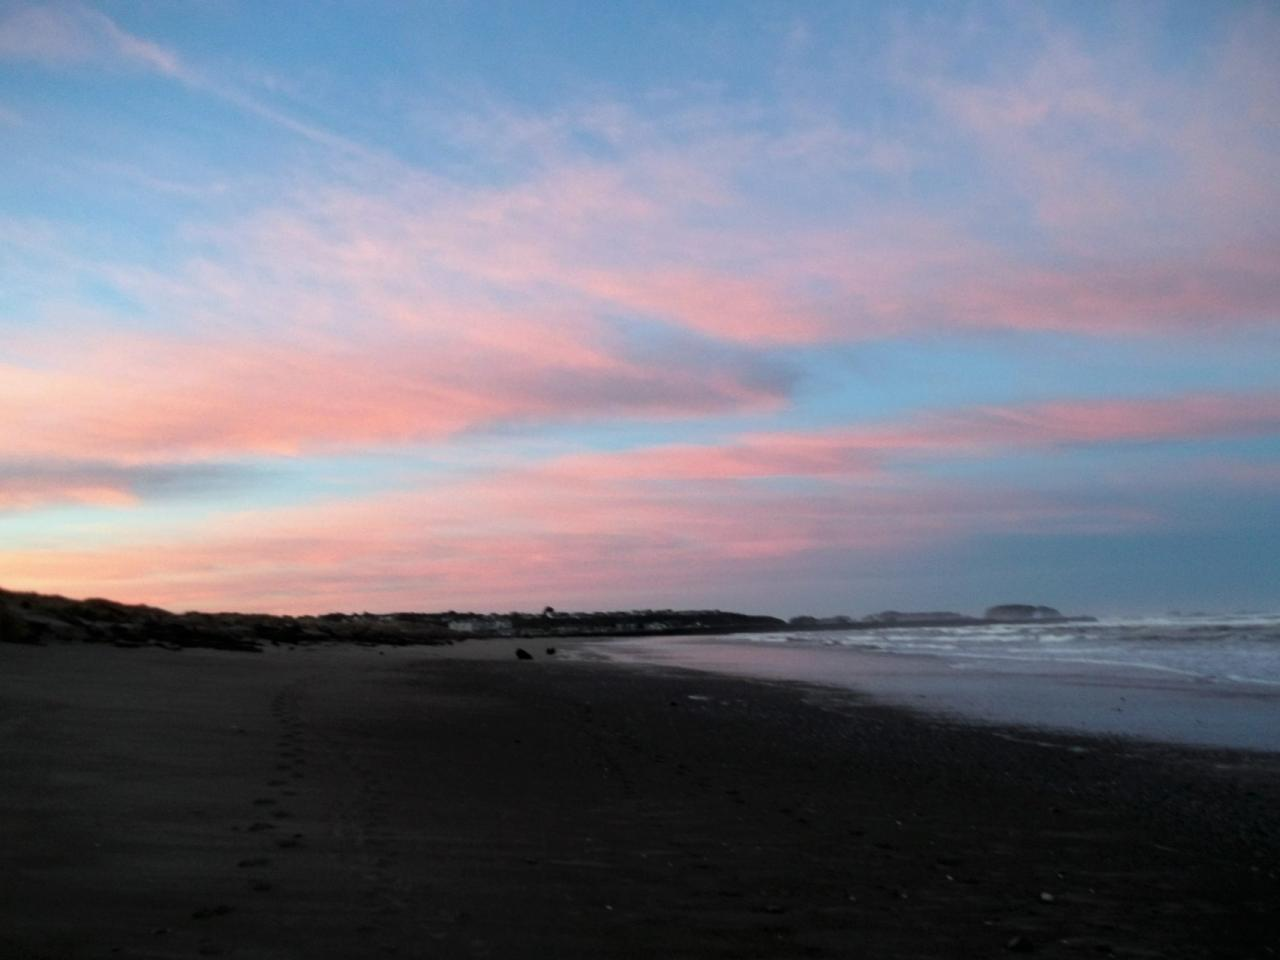 Sunrise over Bandon is glorious as seen looking south from the beach to the north of the Coquille River.